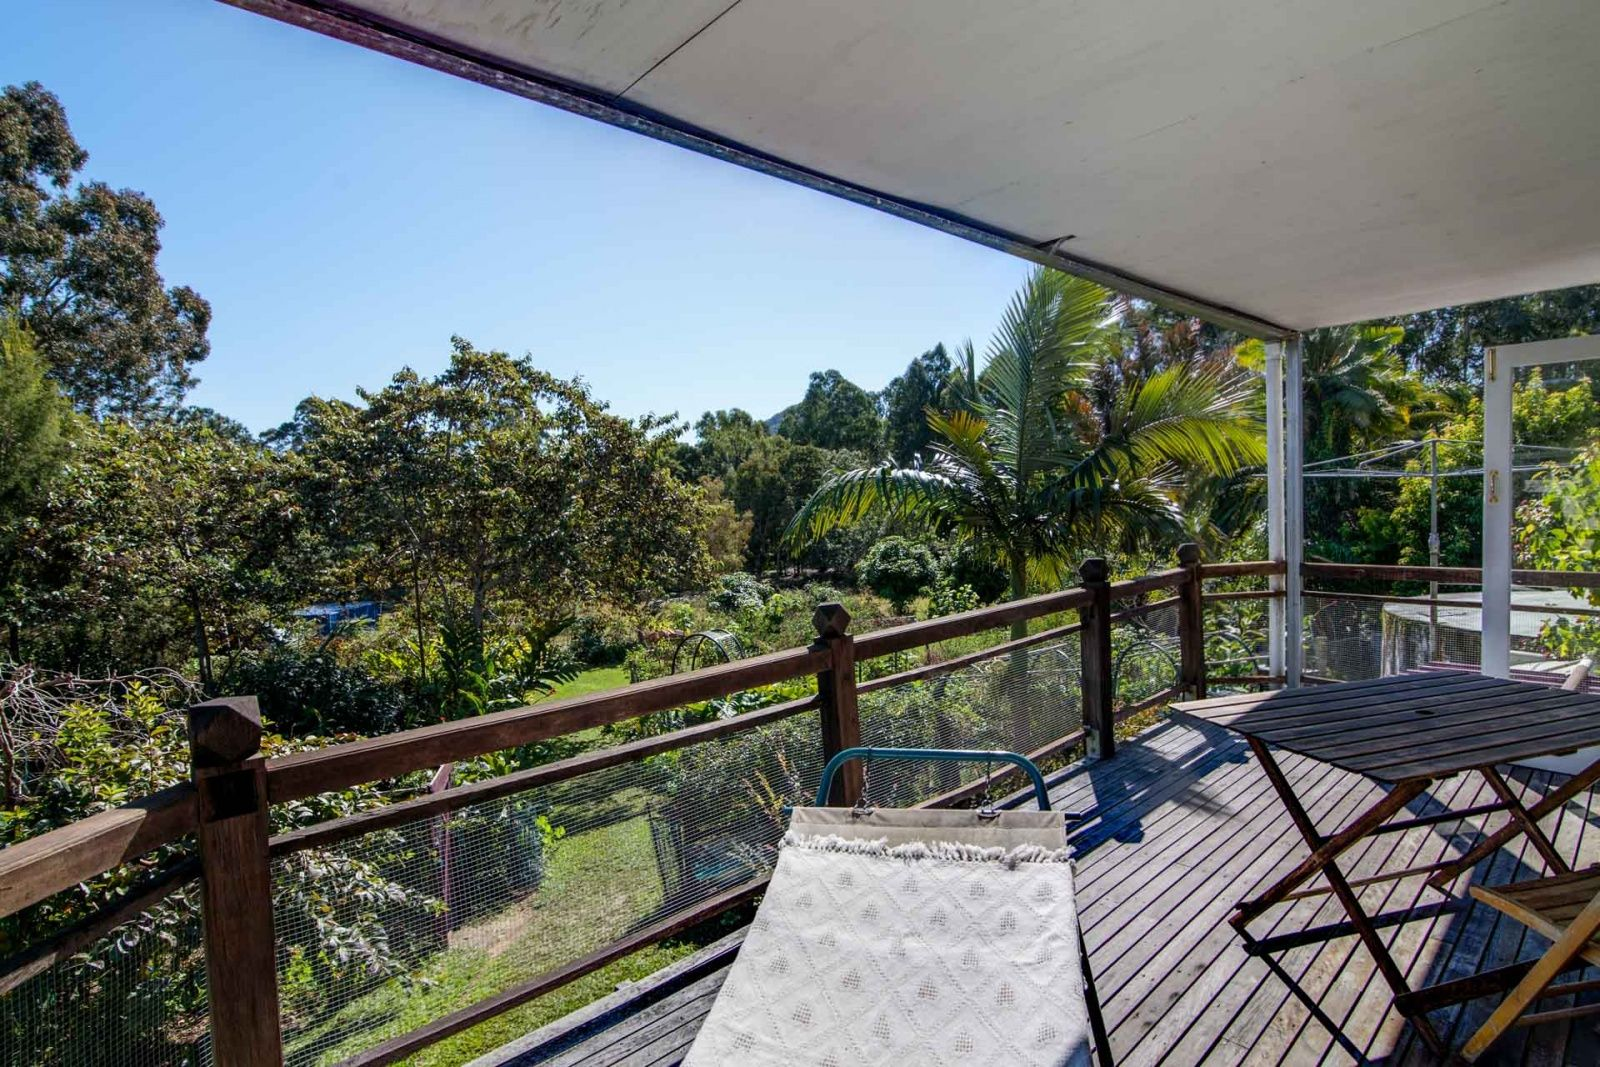 40-44 Sunrise Road, Eumundi QLD 4562